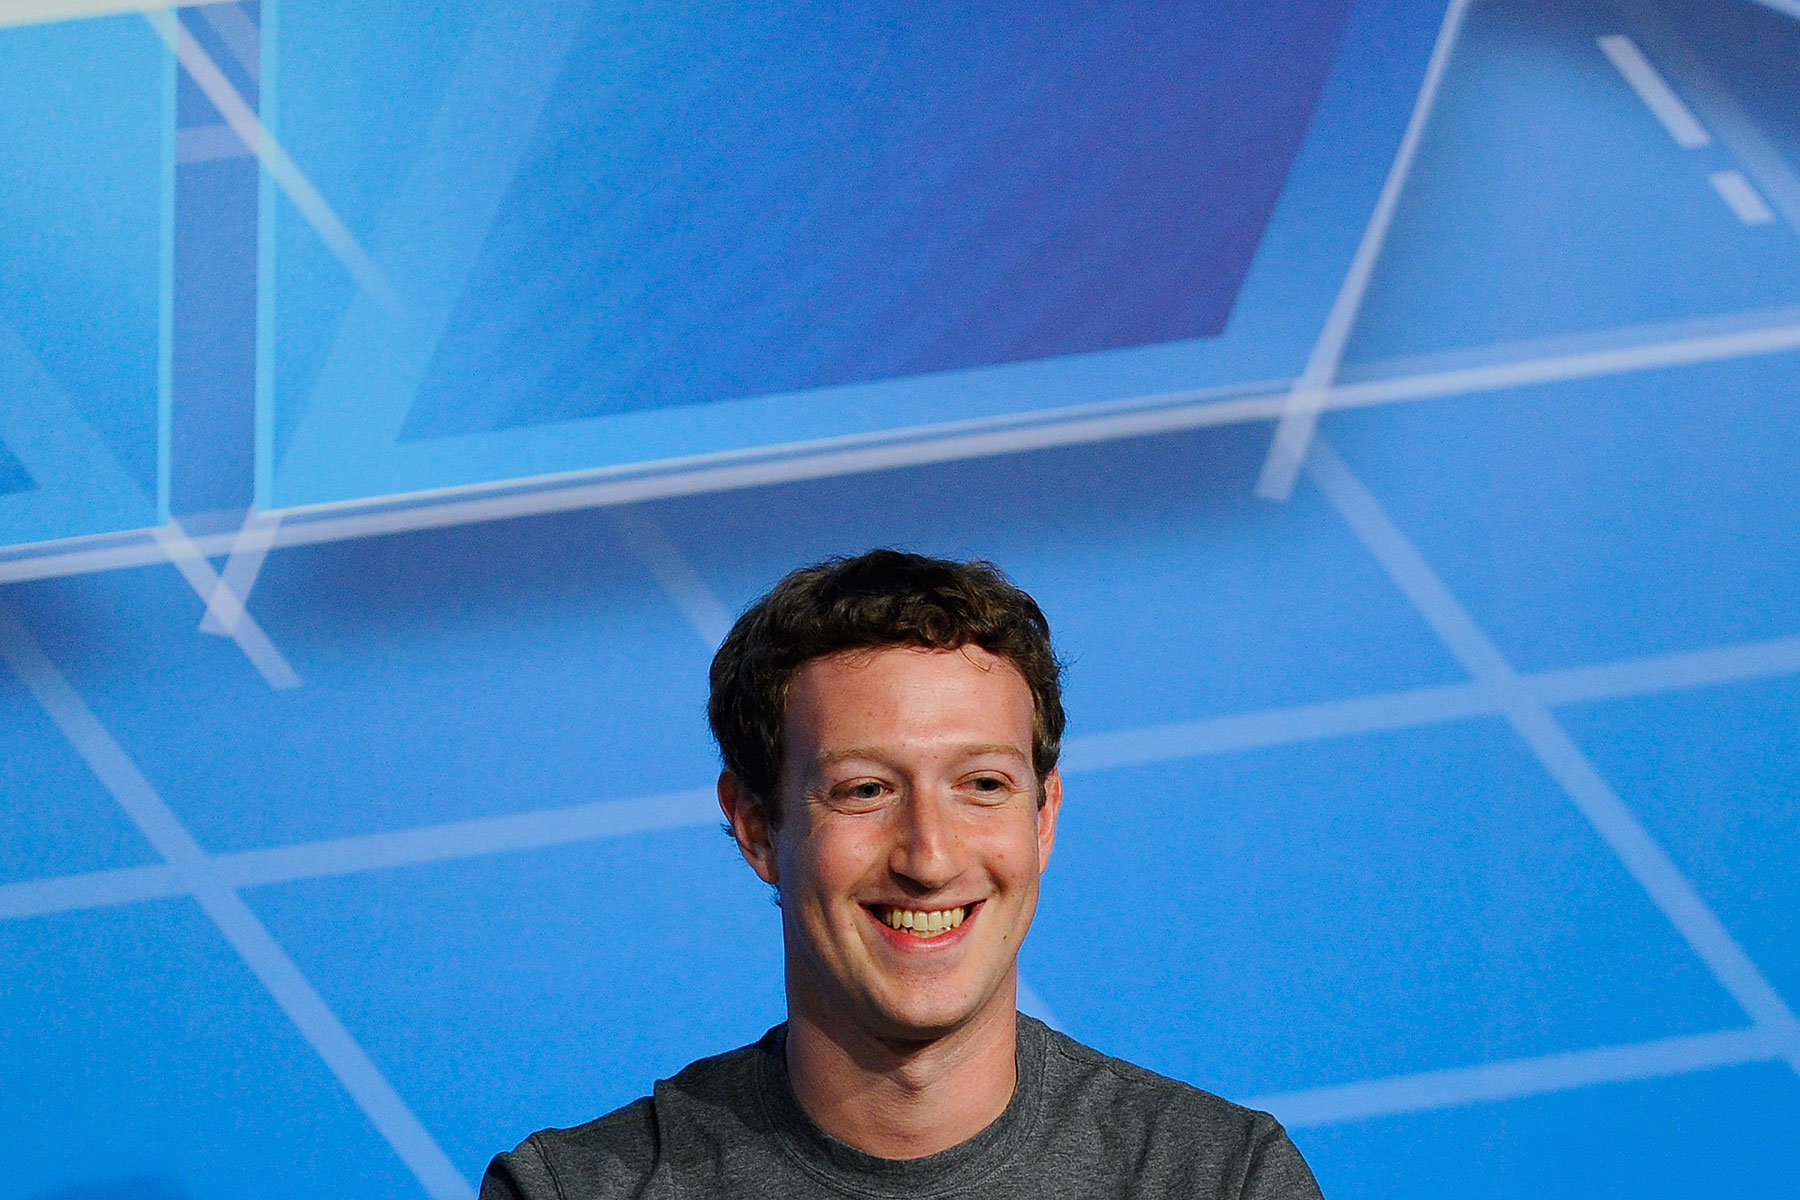 Facebook CEO Mark Zuckerberg delivers a speech in the Mobile World Congress in Barcelona on Feb. 24, 2014